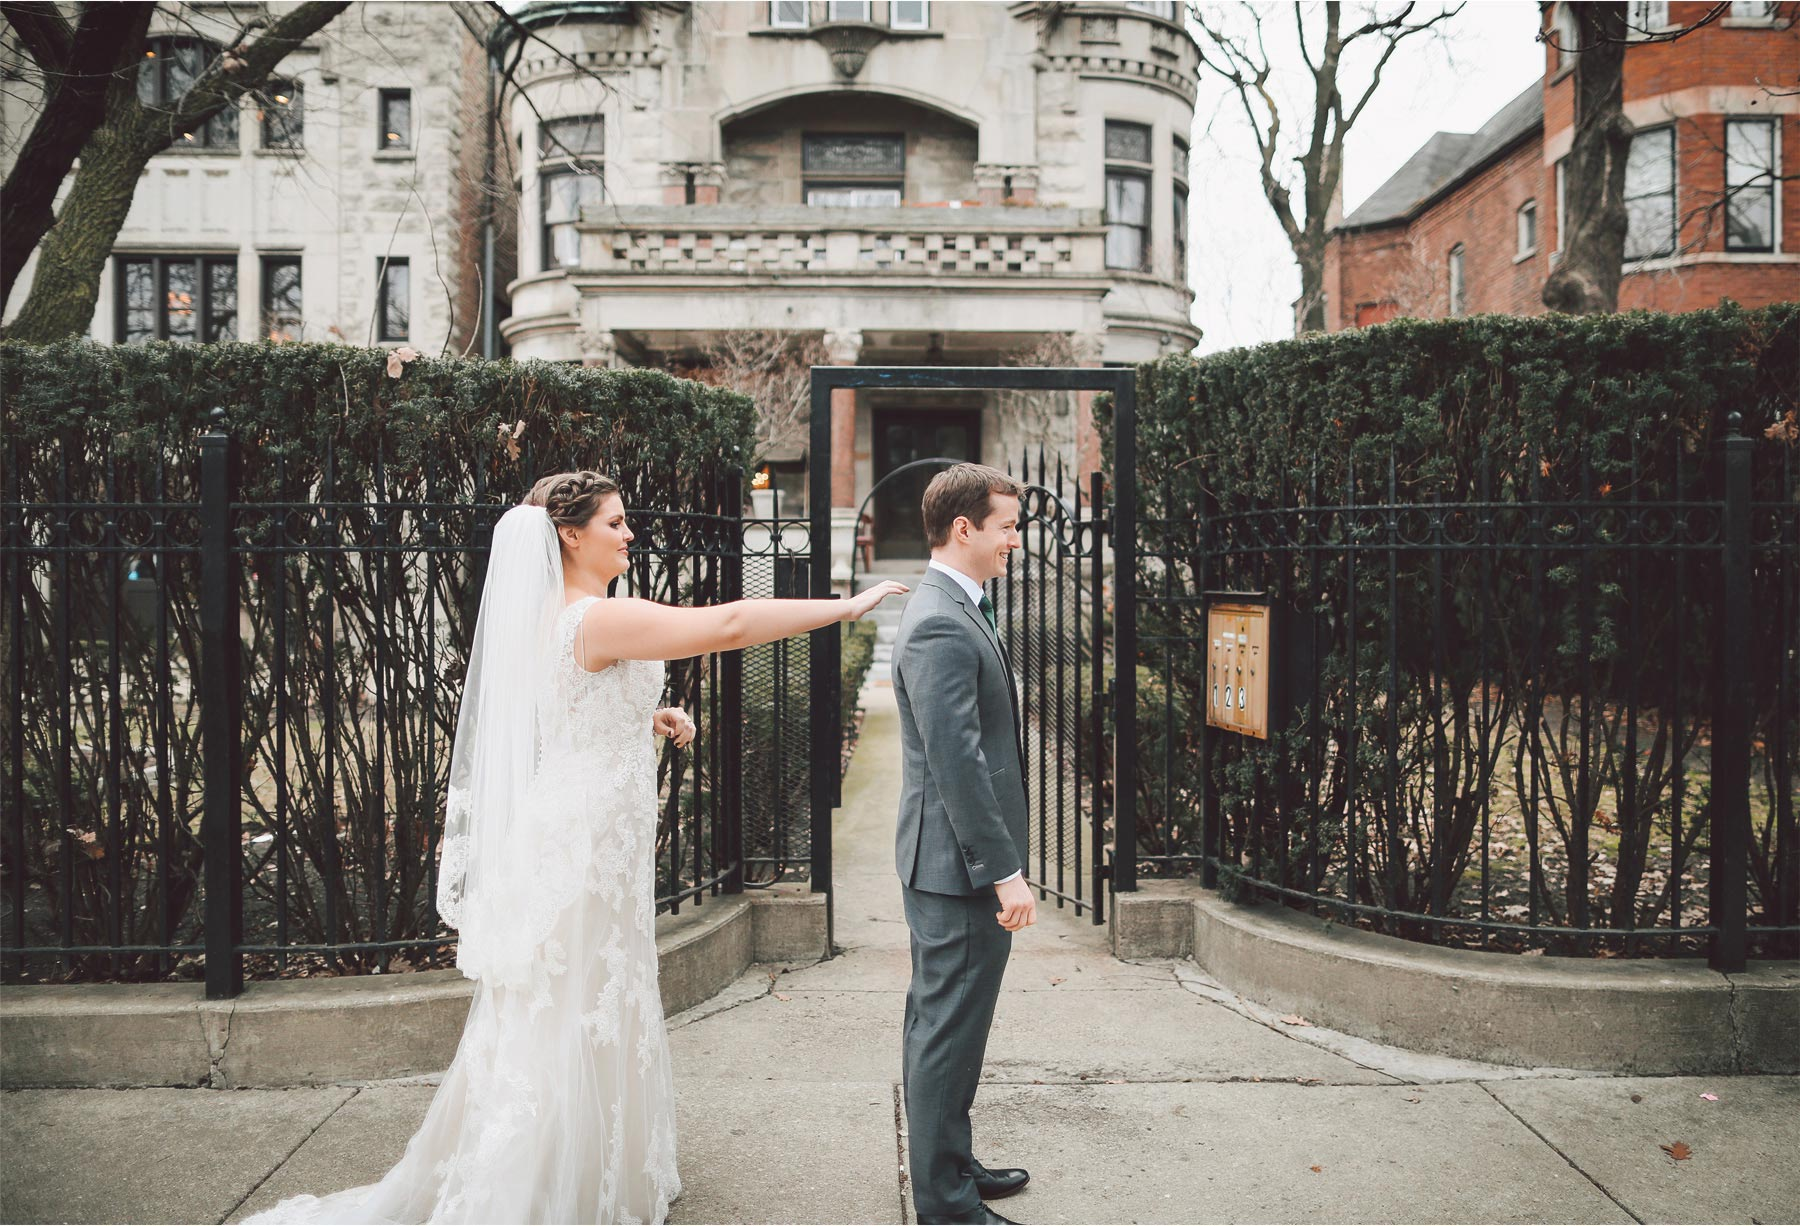 05-Chicago-Illinois-Wedding-Photographer-by-Andrew-Vick-Photography-Winter-Stan-Mansion-First-Meeting-Look-Bride-Groom-Vintage-Colleen-and-Mike.jpg